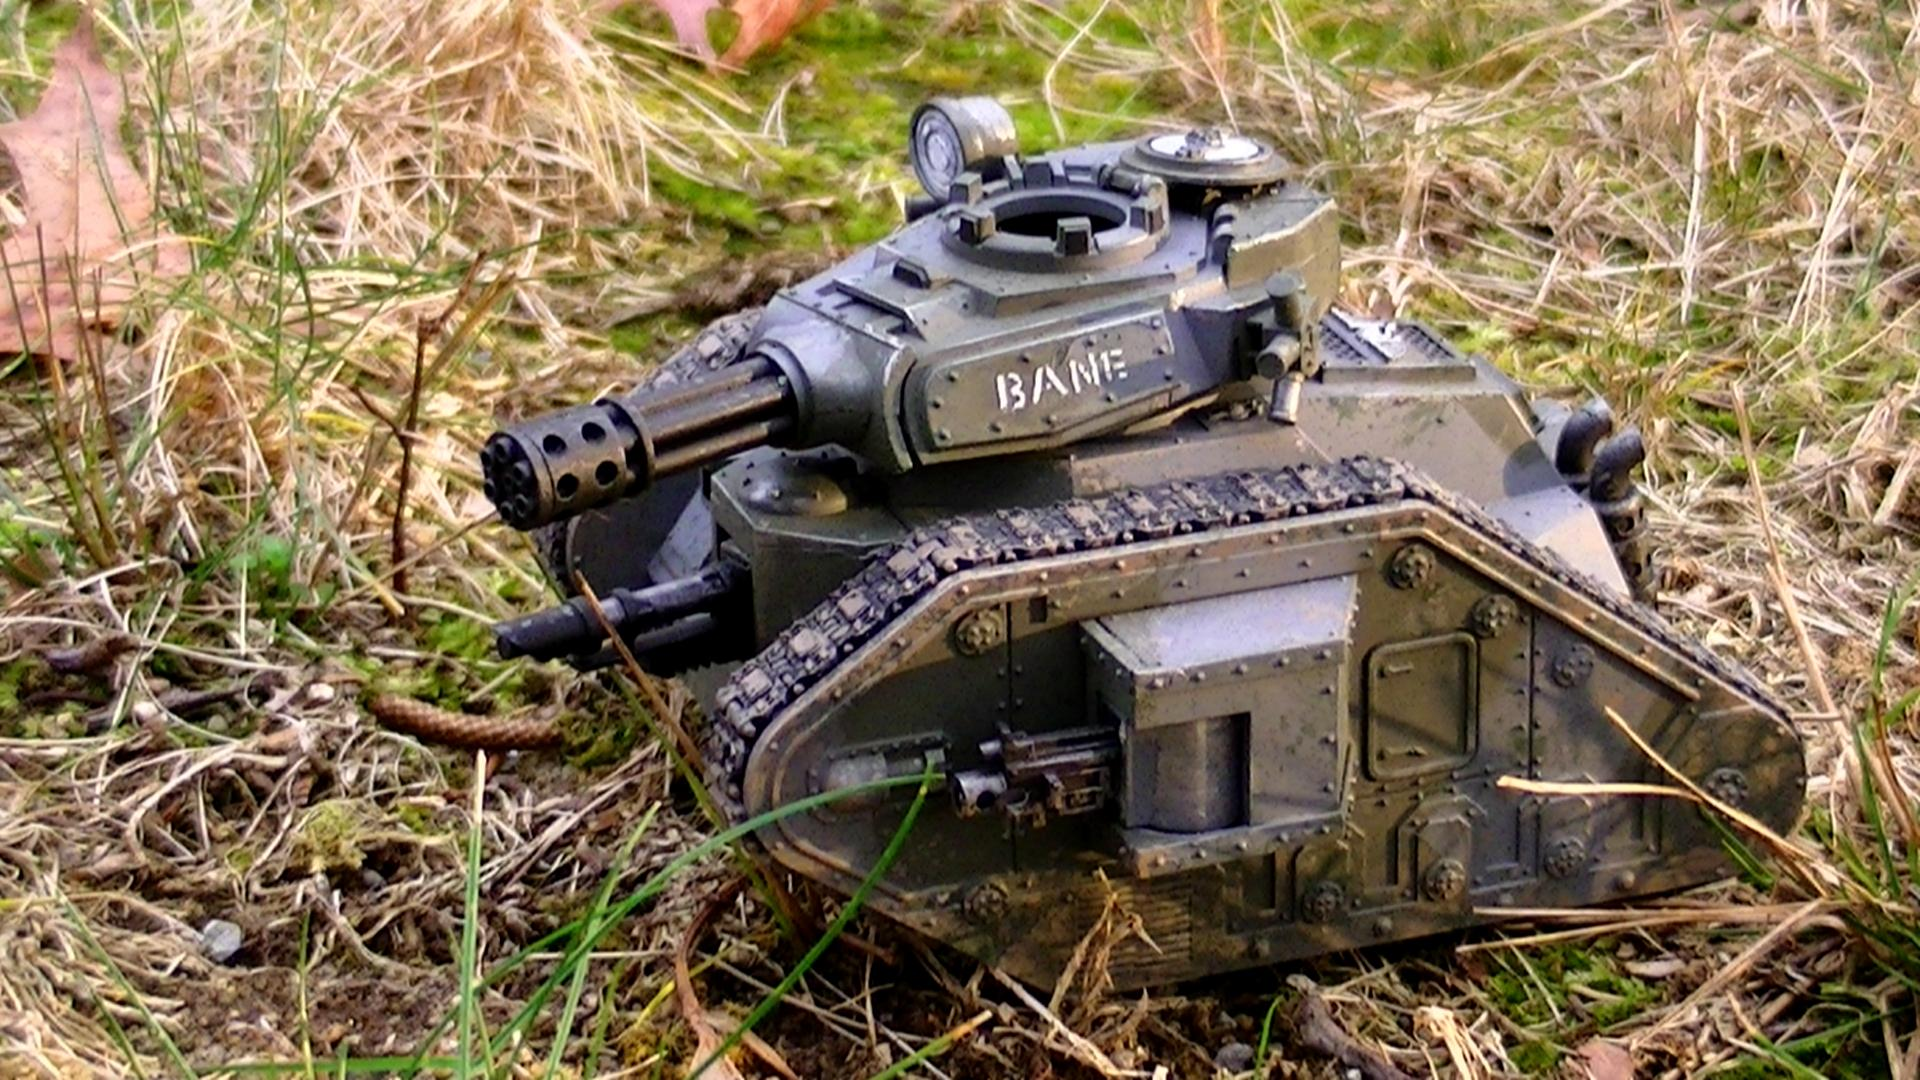 508th, Armor, Armoured, Astra Militarum, Bane, Cothonian, Guard, Hammerhead, Imperial, Imperial Guard, Lascannon, Leman, Leman Russ, Painted, Punisher, Russ, Tank, Urban Pattern